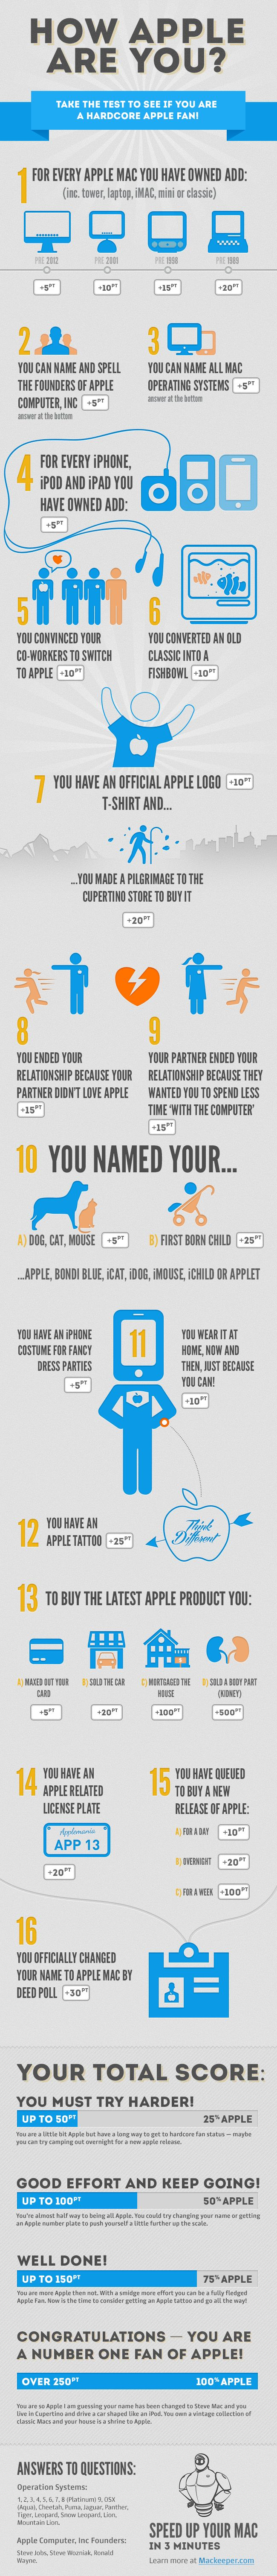 How Apple Are You Infographic